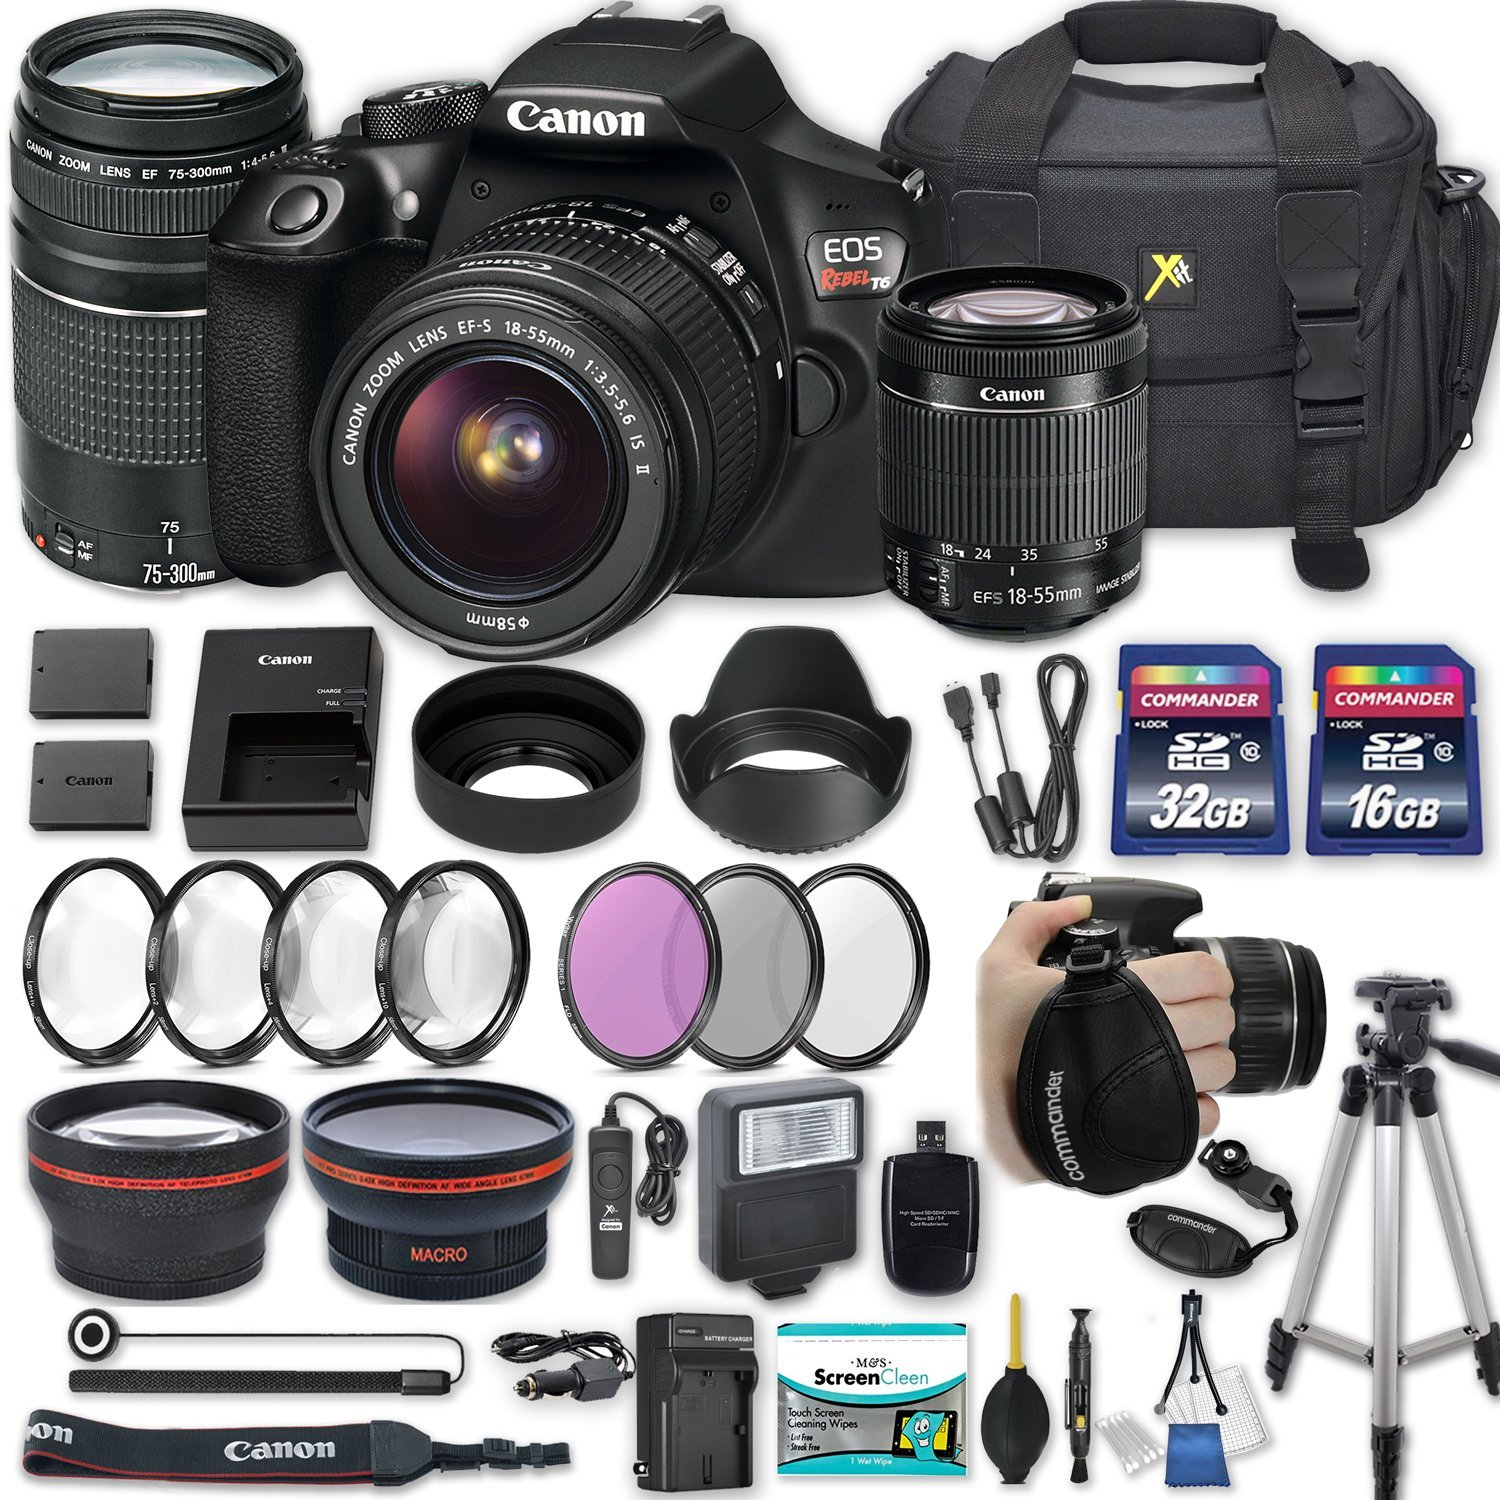 "Canon EOS Rebel T6 DSLR Camera with EF-S 18-55mm f/3.5-5.6 IS II Lens + EF 75-300mm f/4-5.6 III + 2 Memory Cards + 2 Aux Lenses + 50"" Tripod + Accessories Bundle (25 Items)"